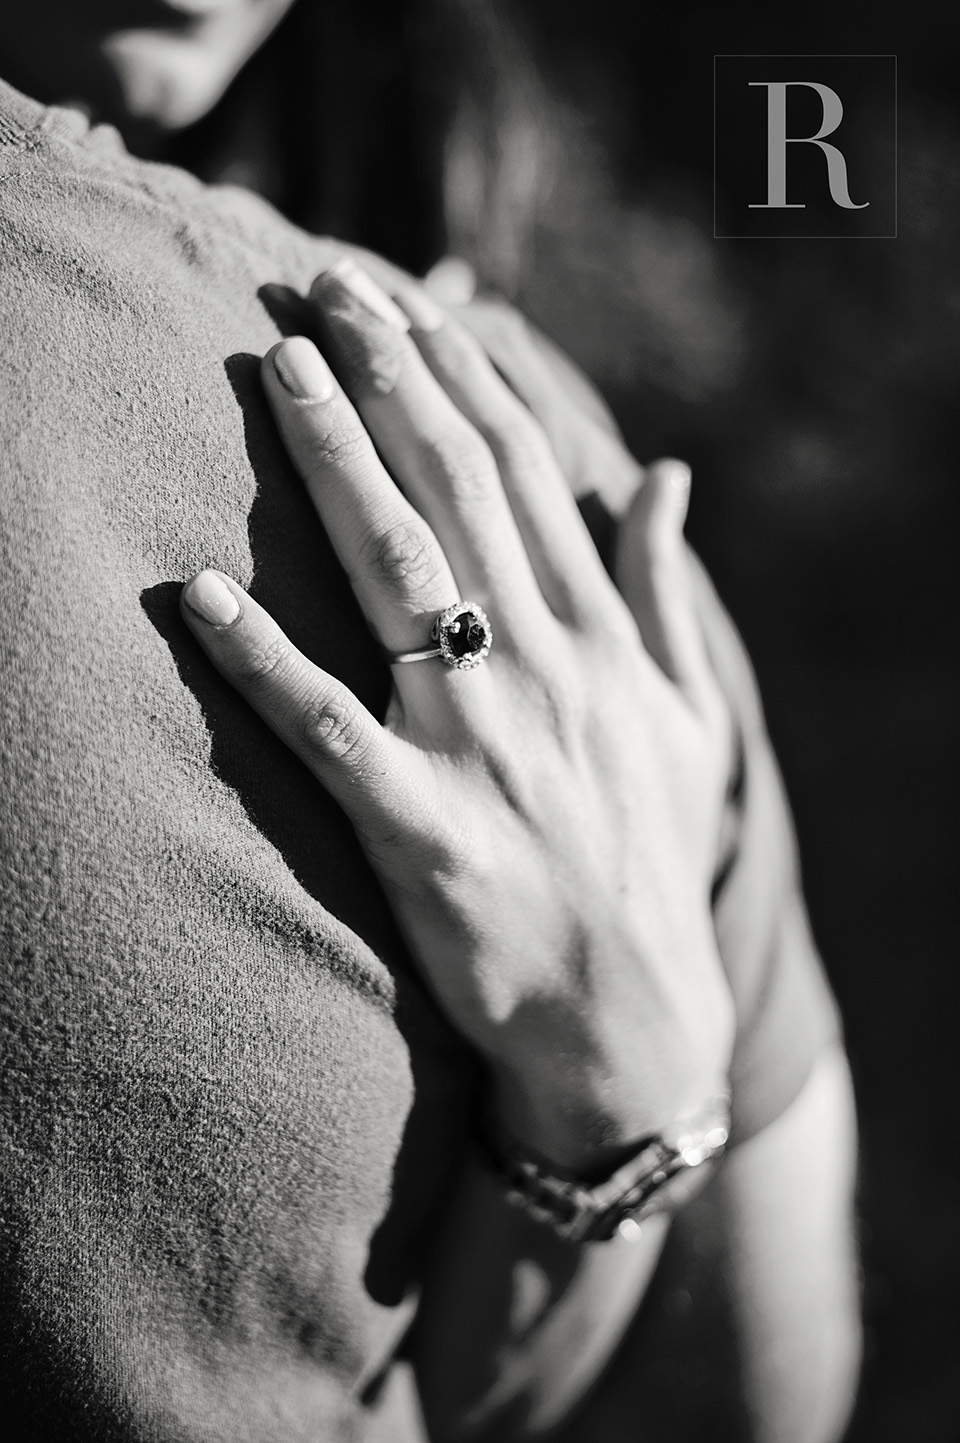 RYAN PARKER PHOTOGRAPHY_ESTEE & BERNARD_ENGAGEMENT SESSION_JOHANNESBURG DSC_1861.jpg